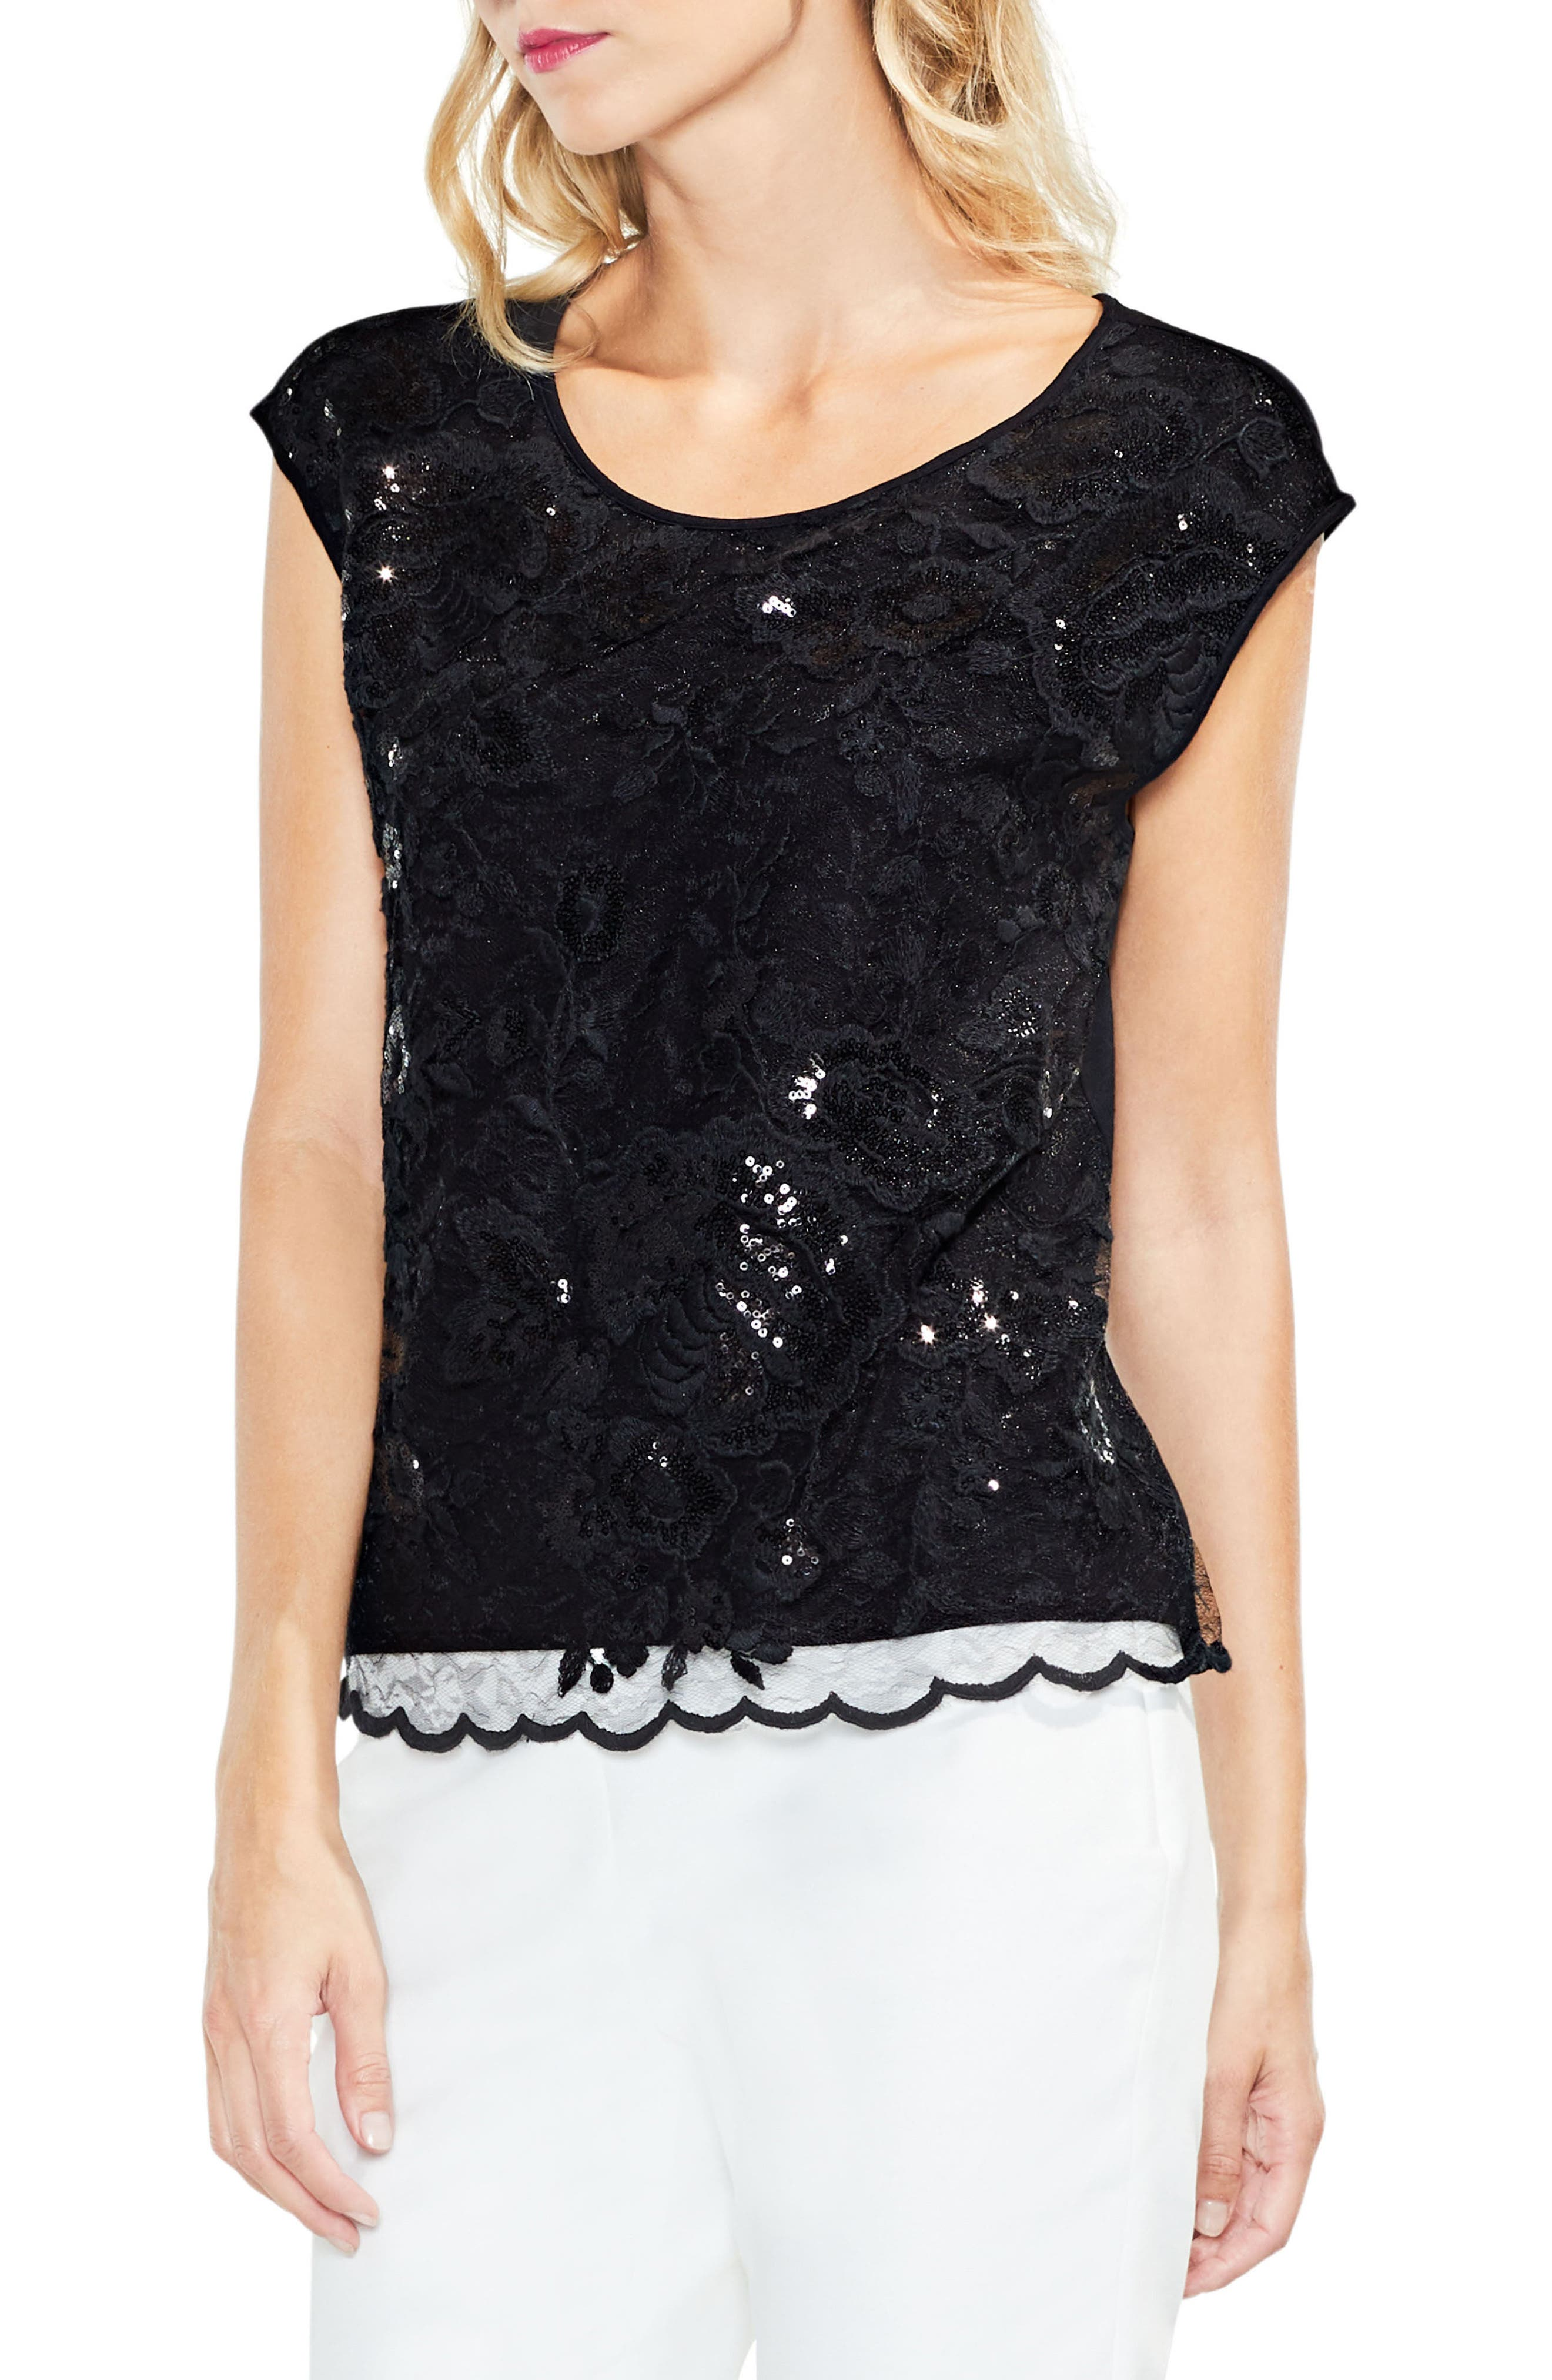 Alternate Image 1 Selected - Vince Camuto Sequin Lace Blouse